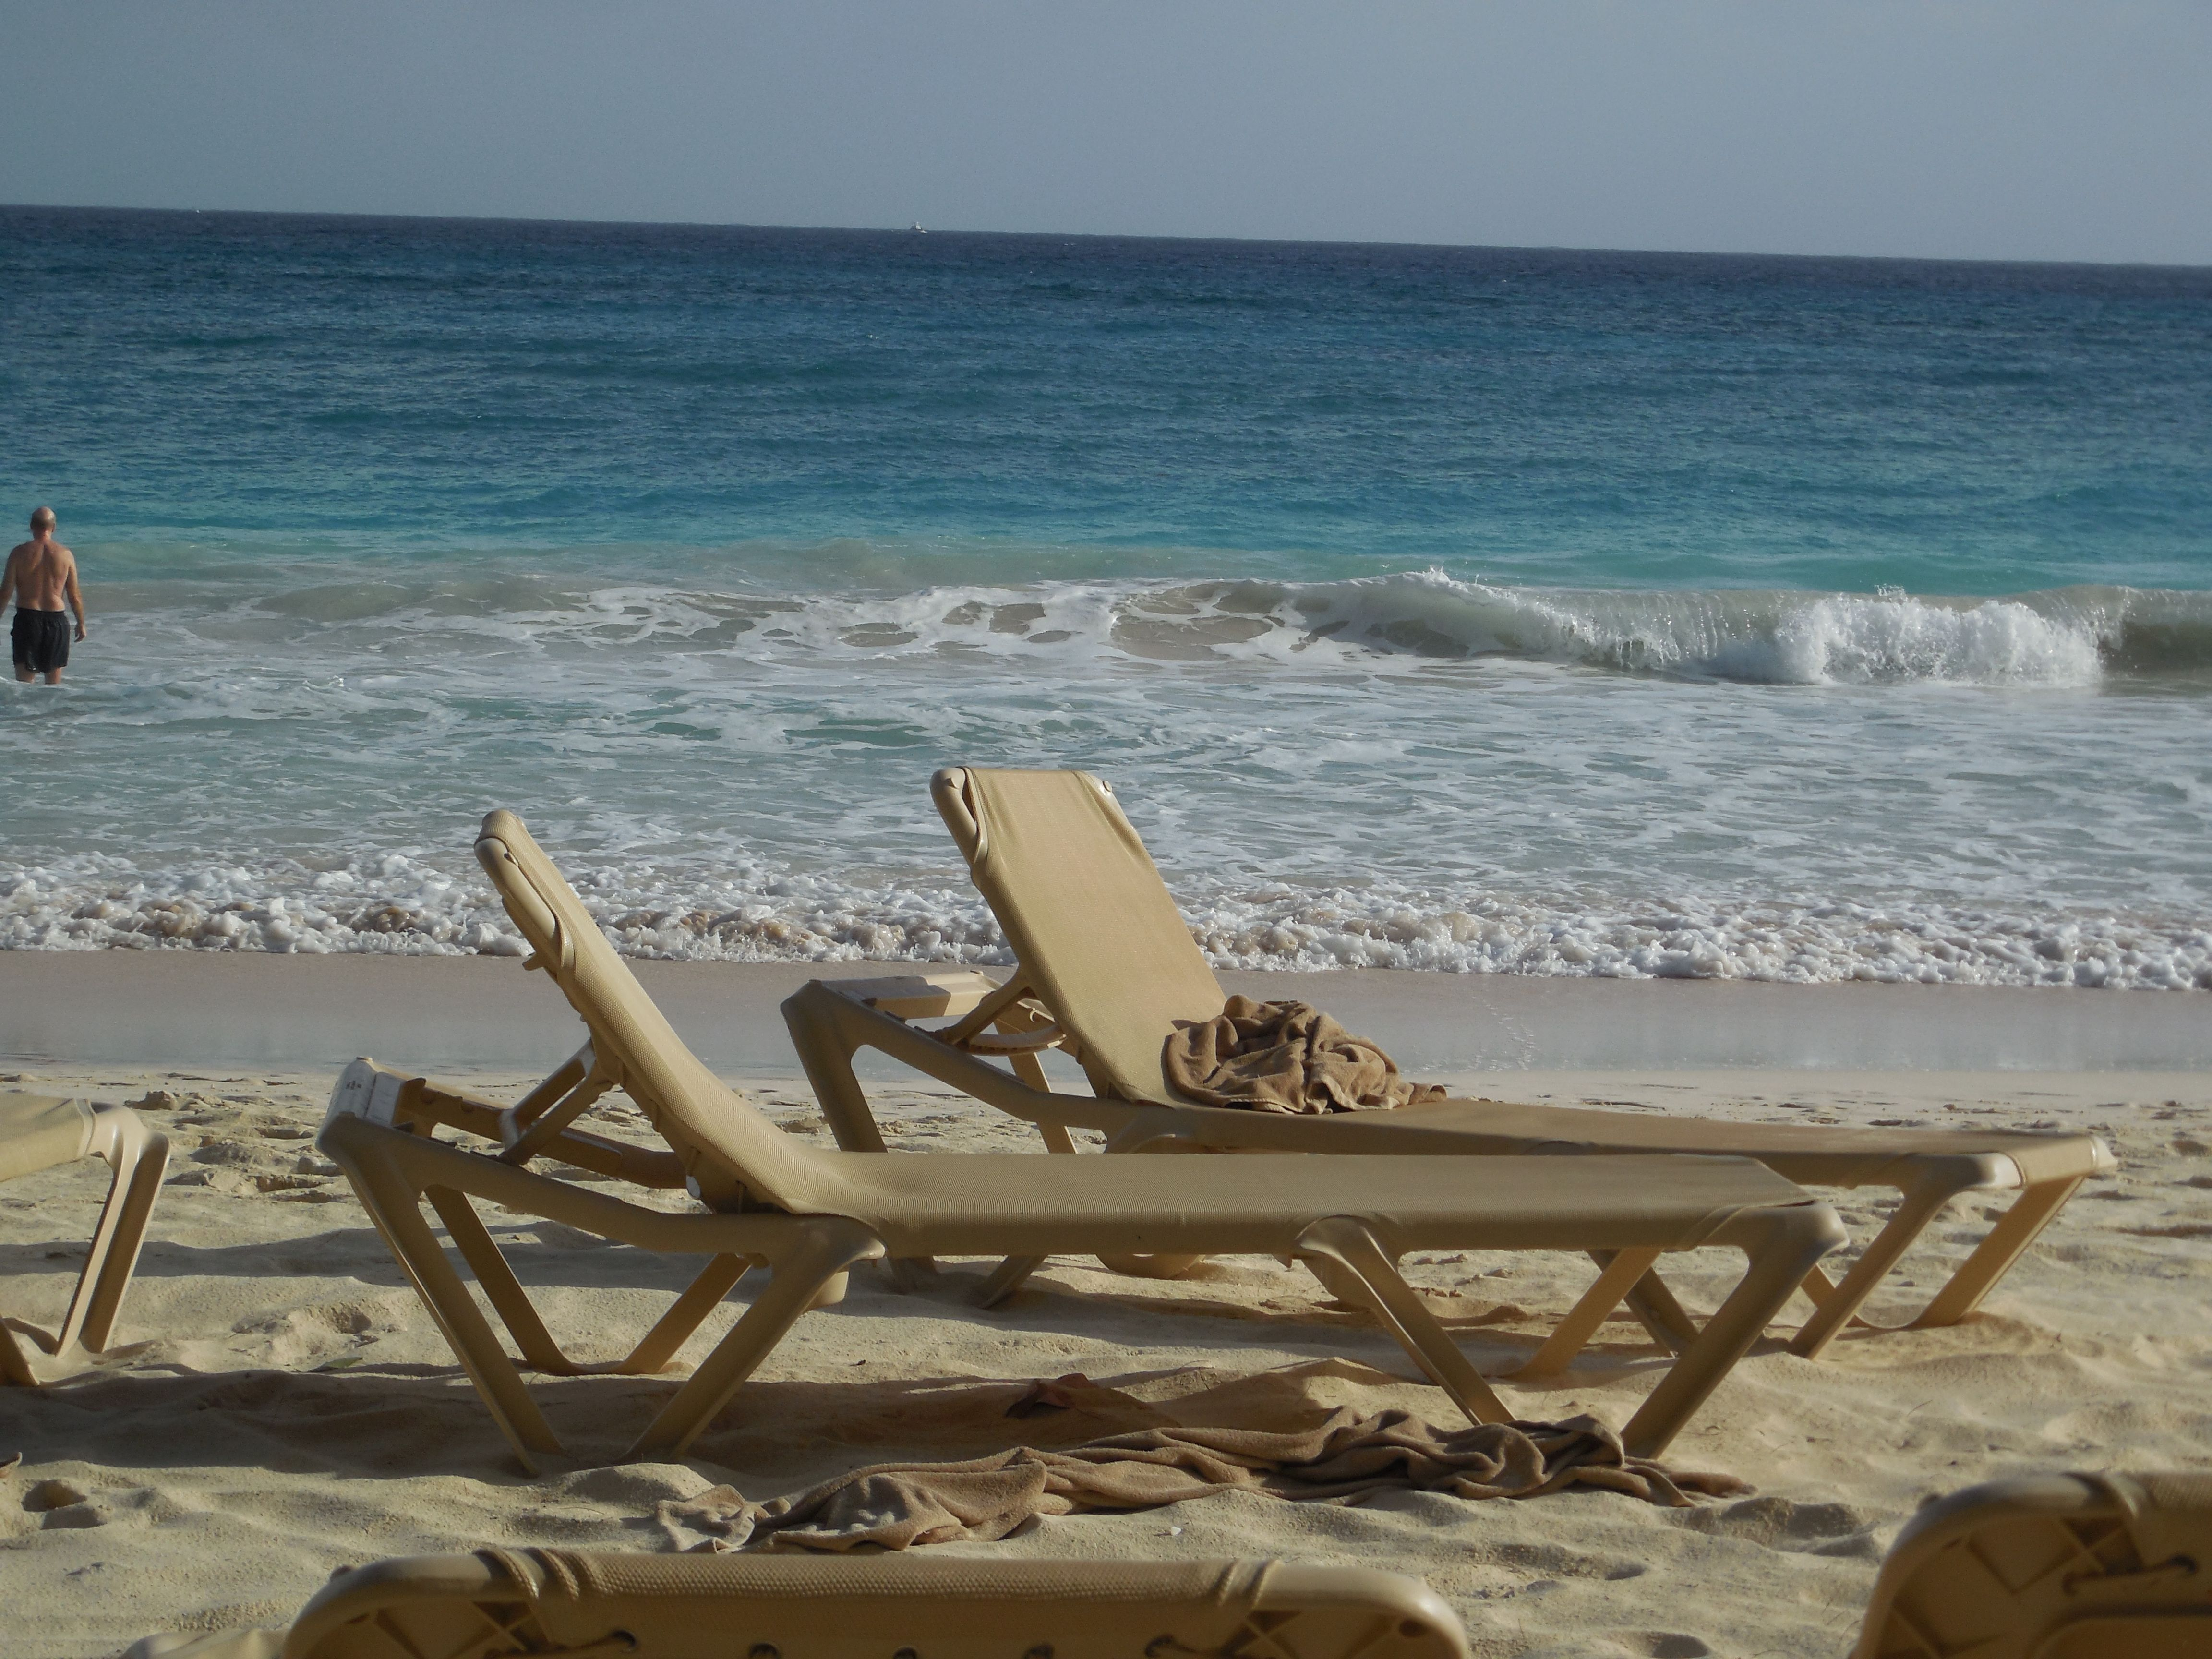 Barbados the most beautiful place I have ever experienced including the people :)